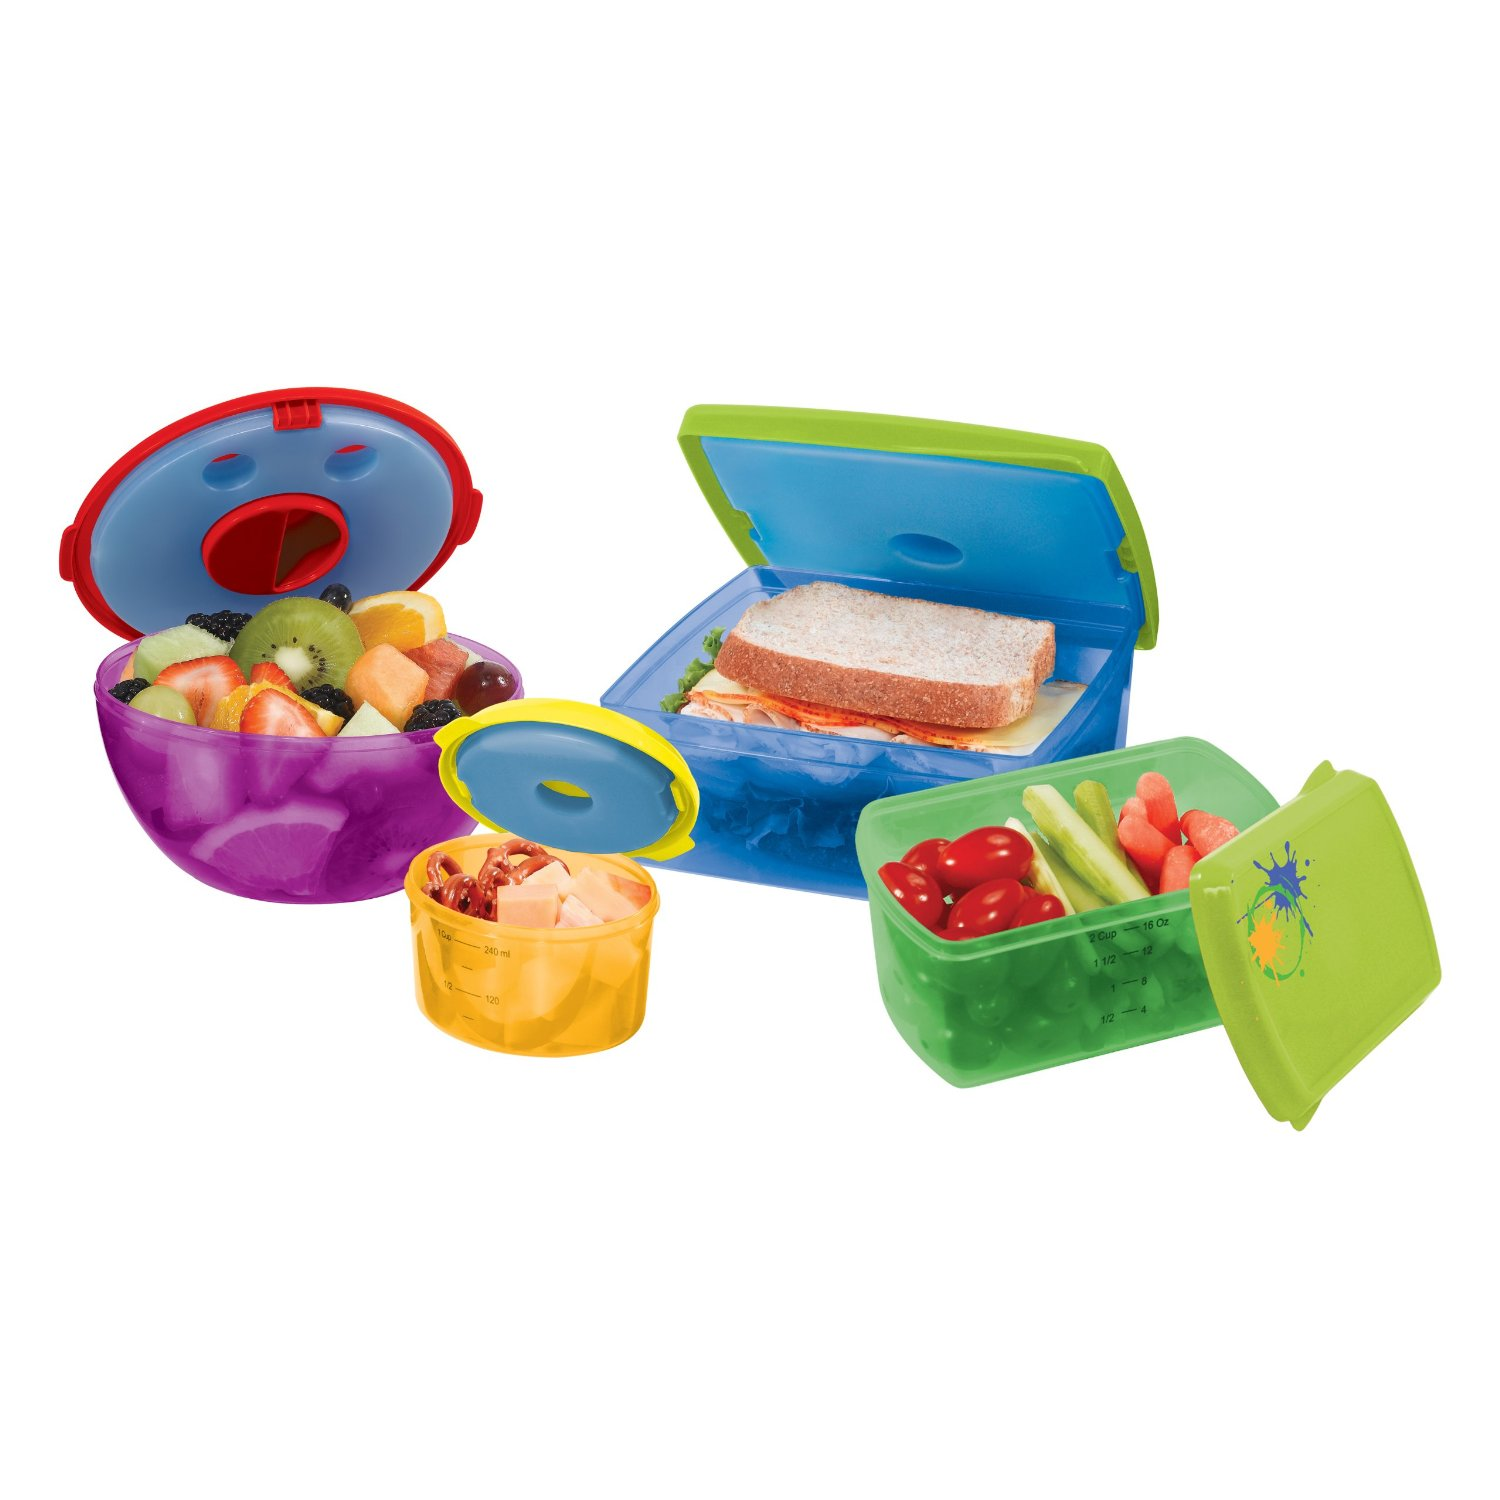 best lunch boxes for kids new kids center. Black Bedroom Furniture Sets. Home Design Ideas